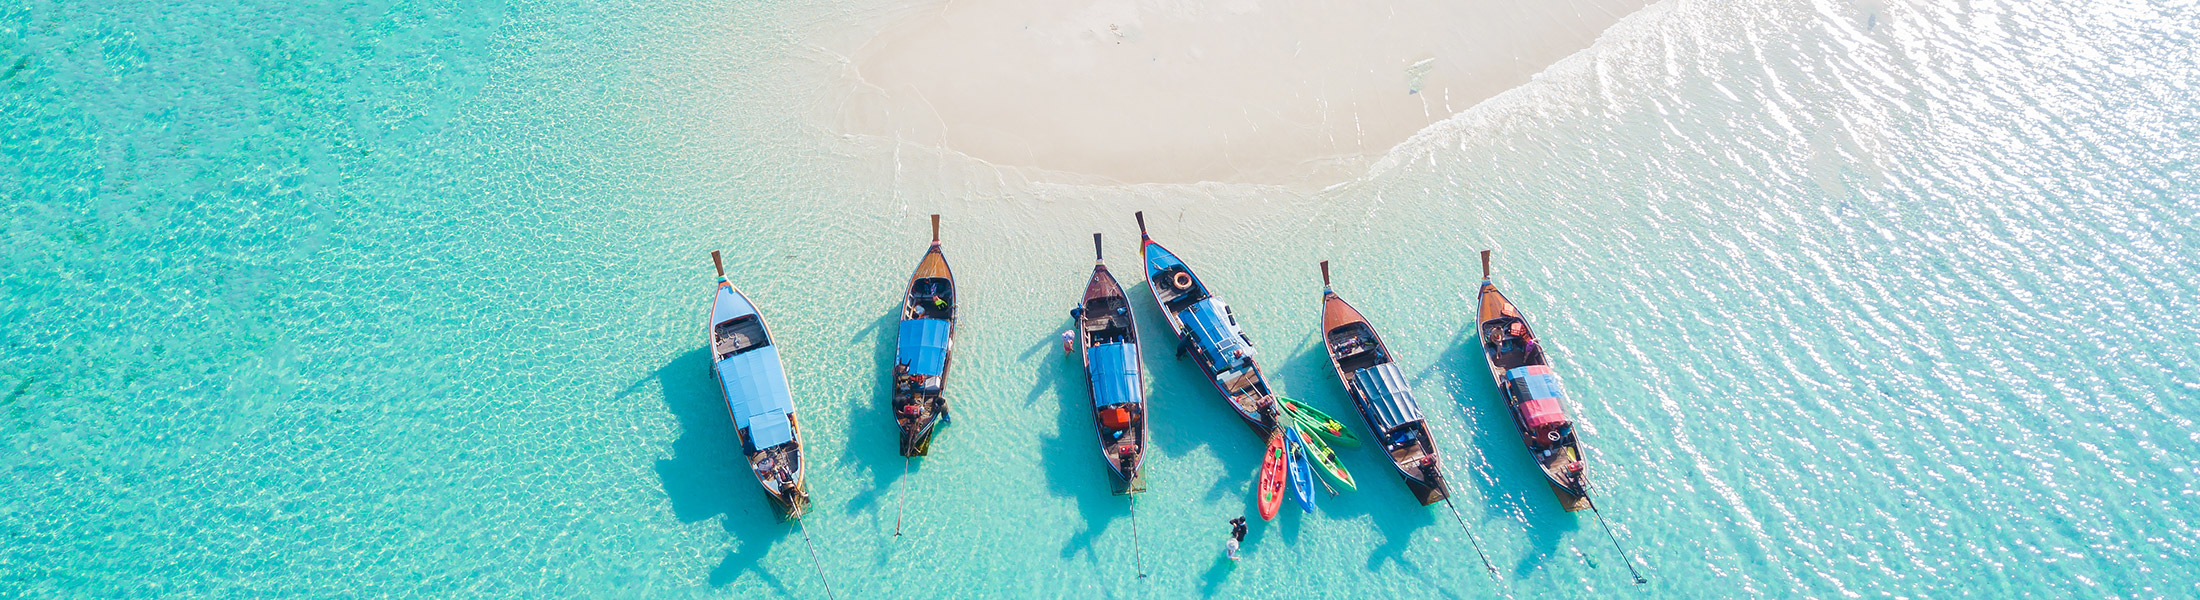 Longtail boats in blue water near a sandbar in Thailand